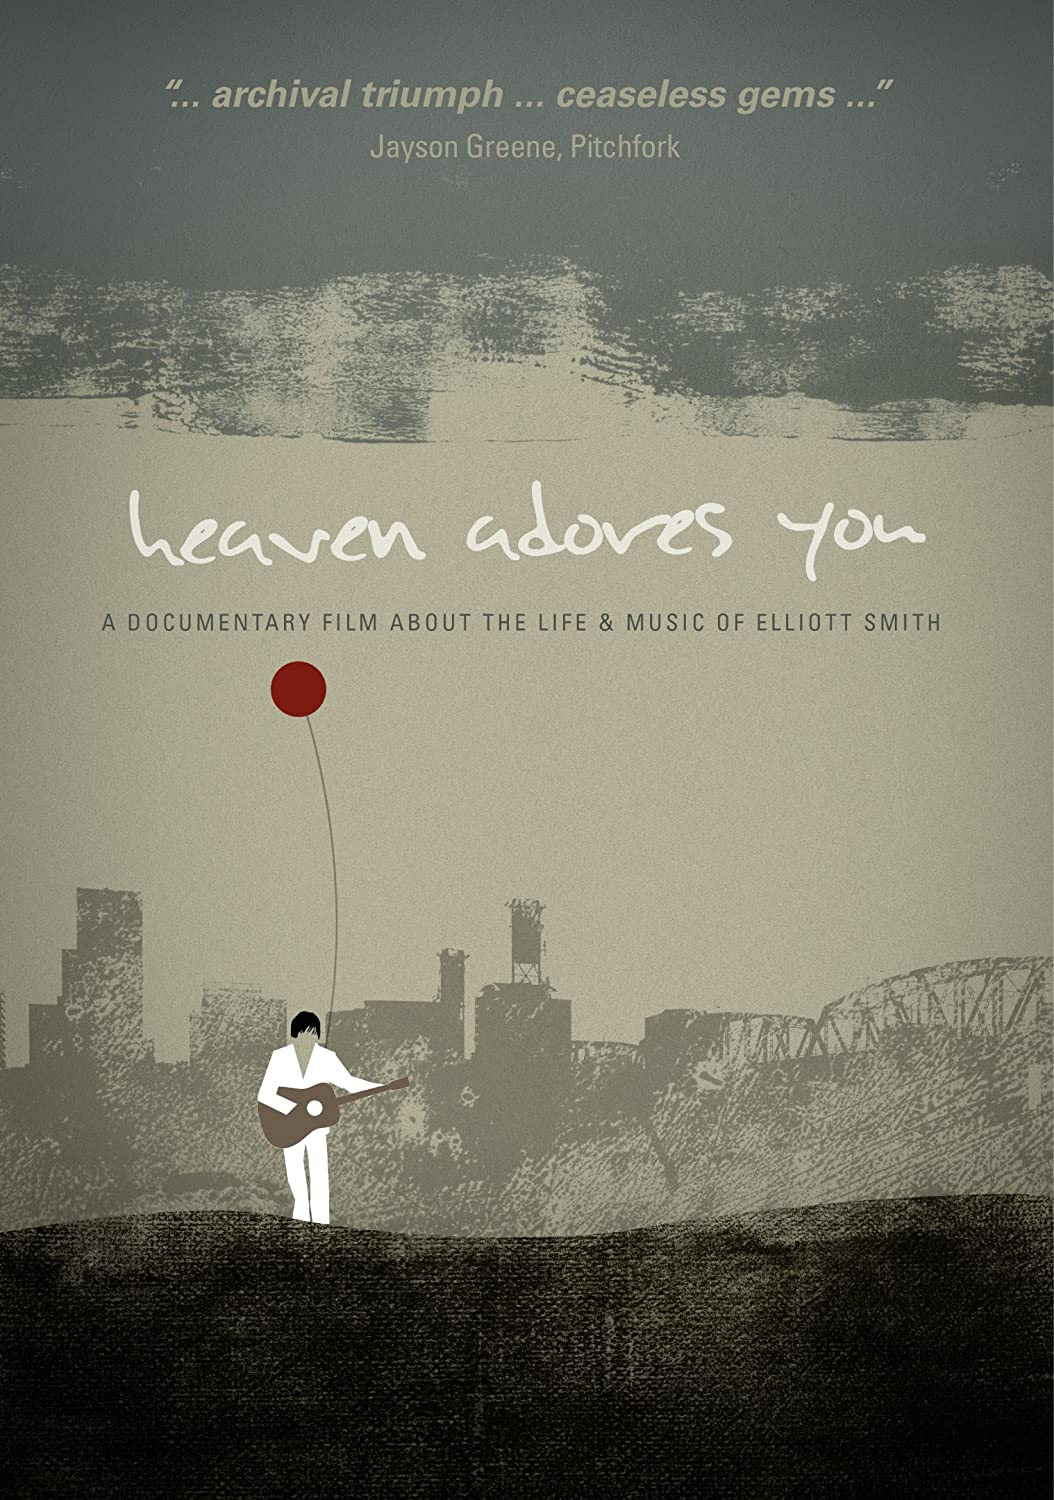 Amazon.com: Heaven Adores You: Elliott Smith, Nickolas Rossi: Movies & TV